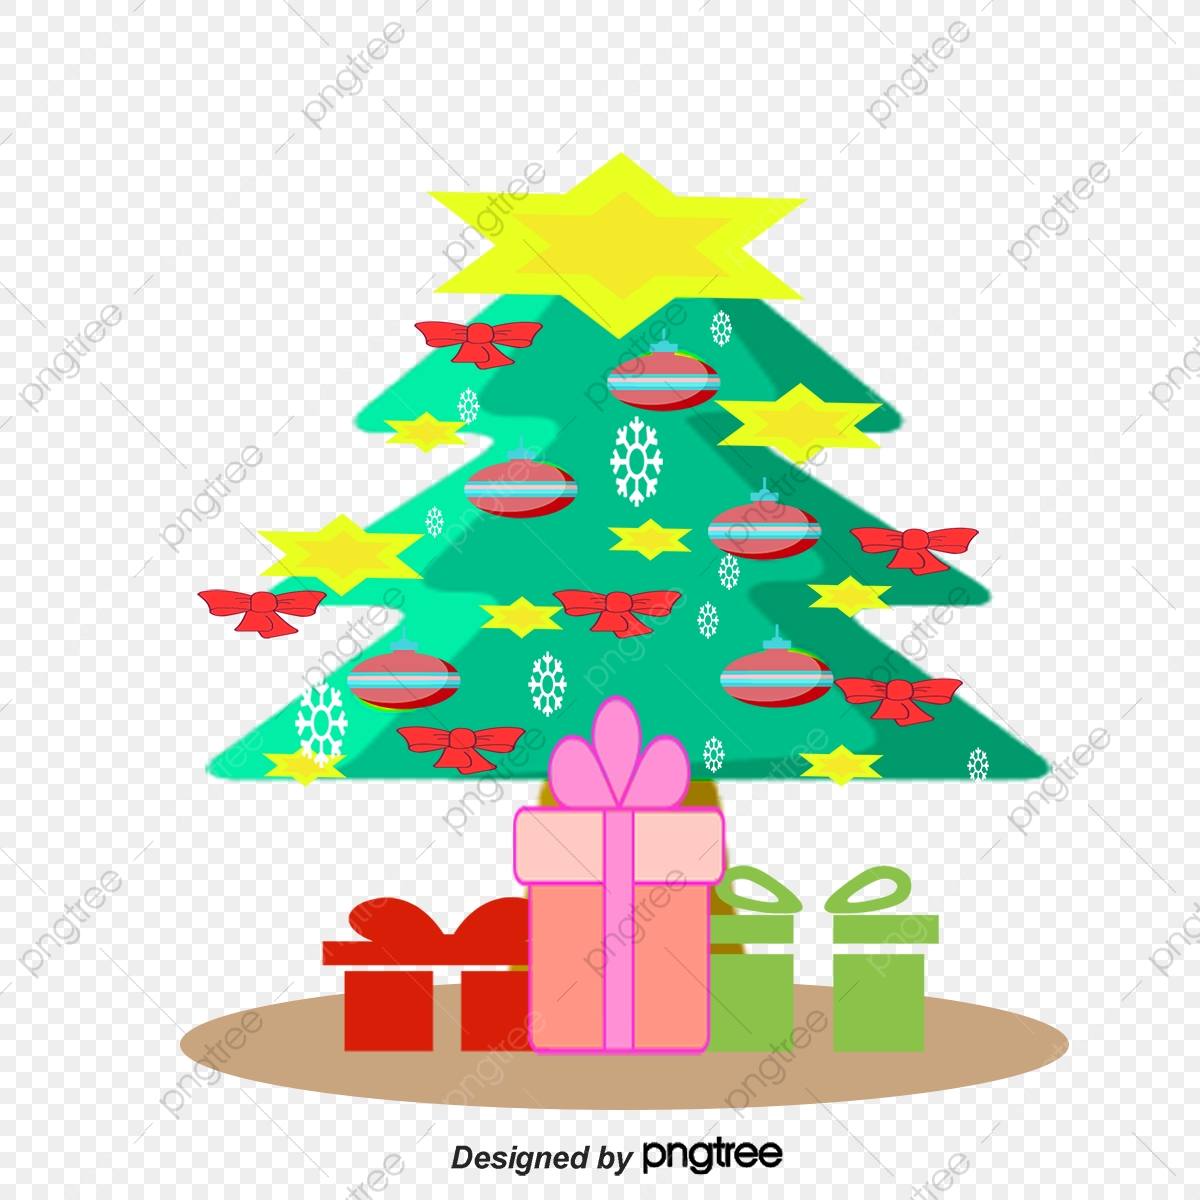 Christmas Tree Clipart Png.Christmas Tree Covered With Gifts Christmas Vector Tree